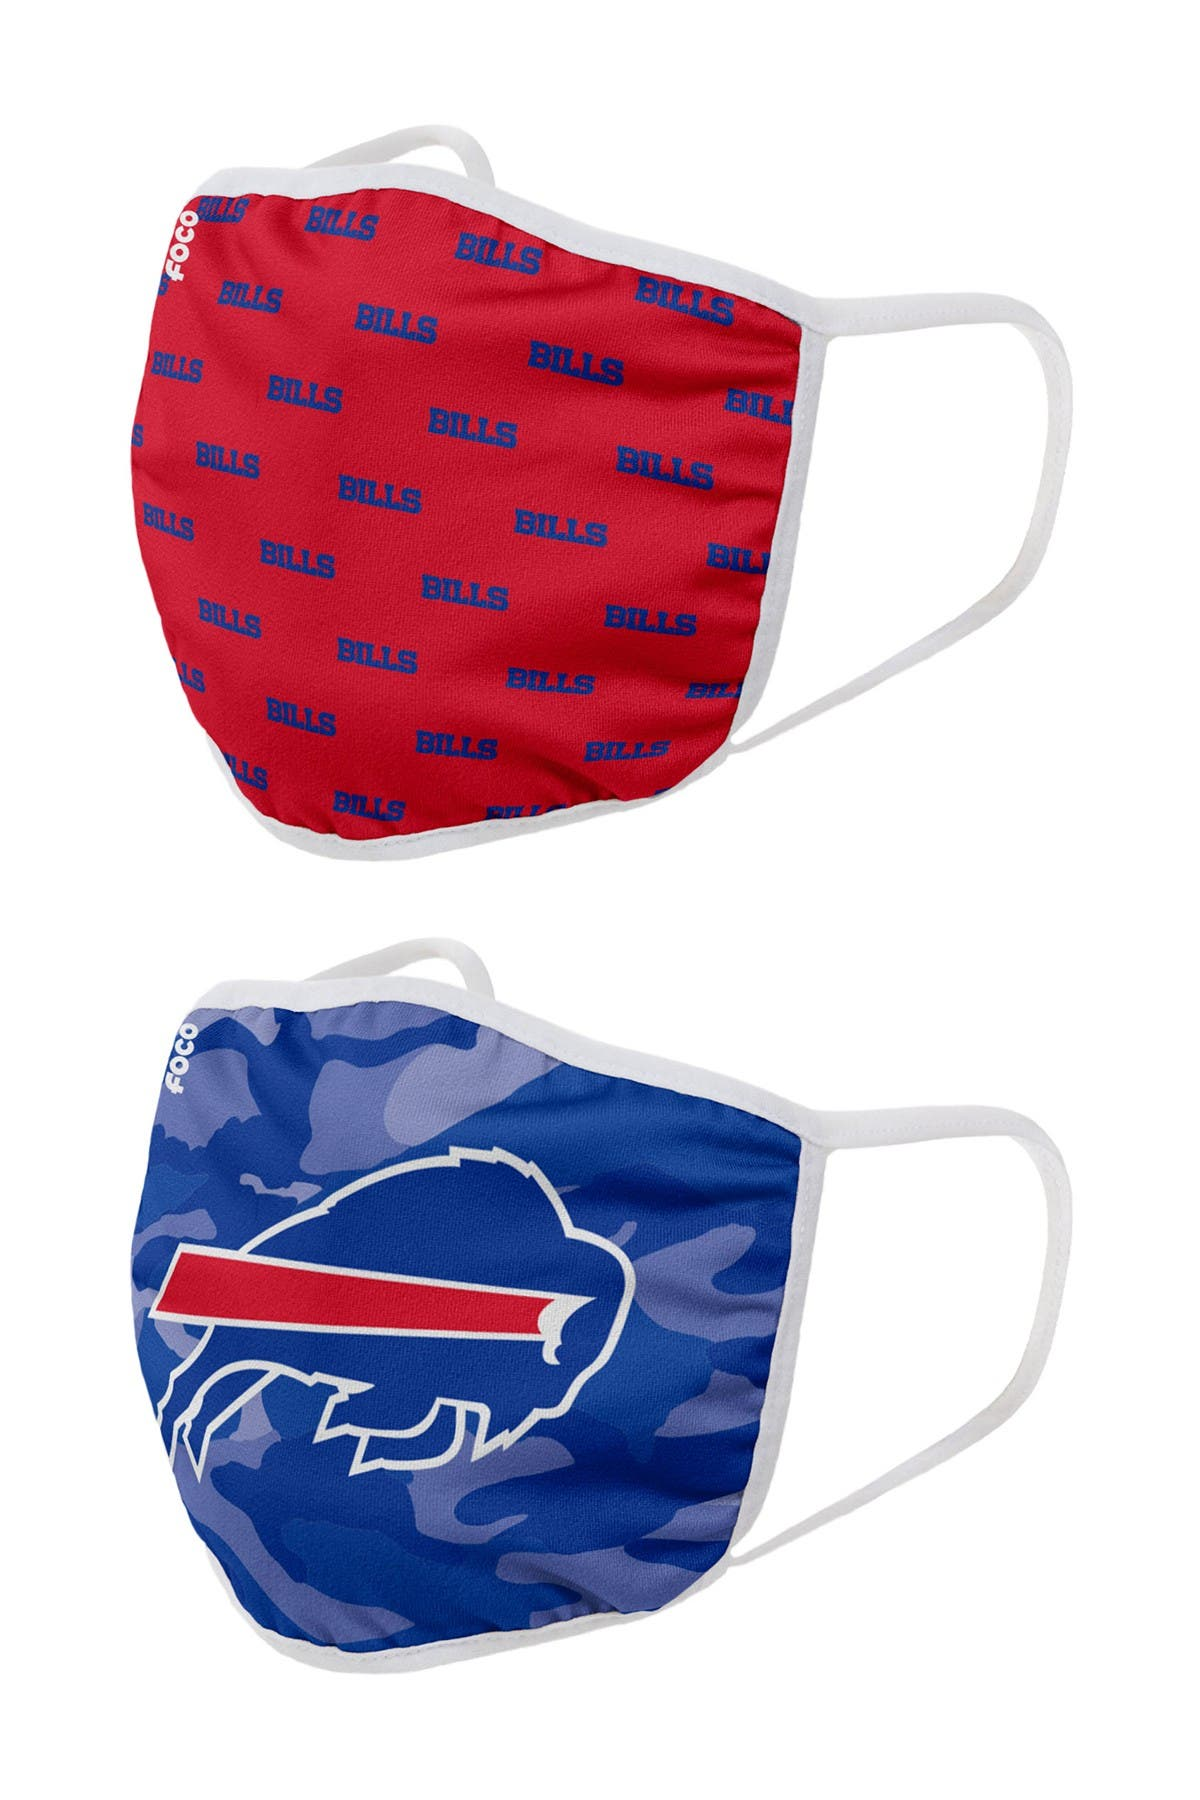 Image of FOCO NFL Buffalo Bills Clutch Printed Face Cover - Pack of 2